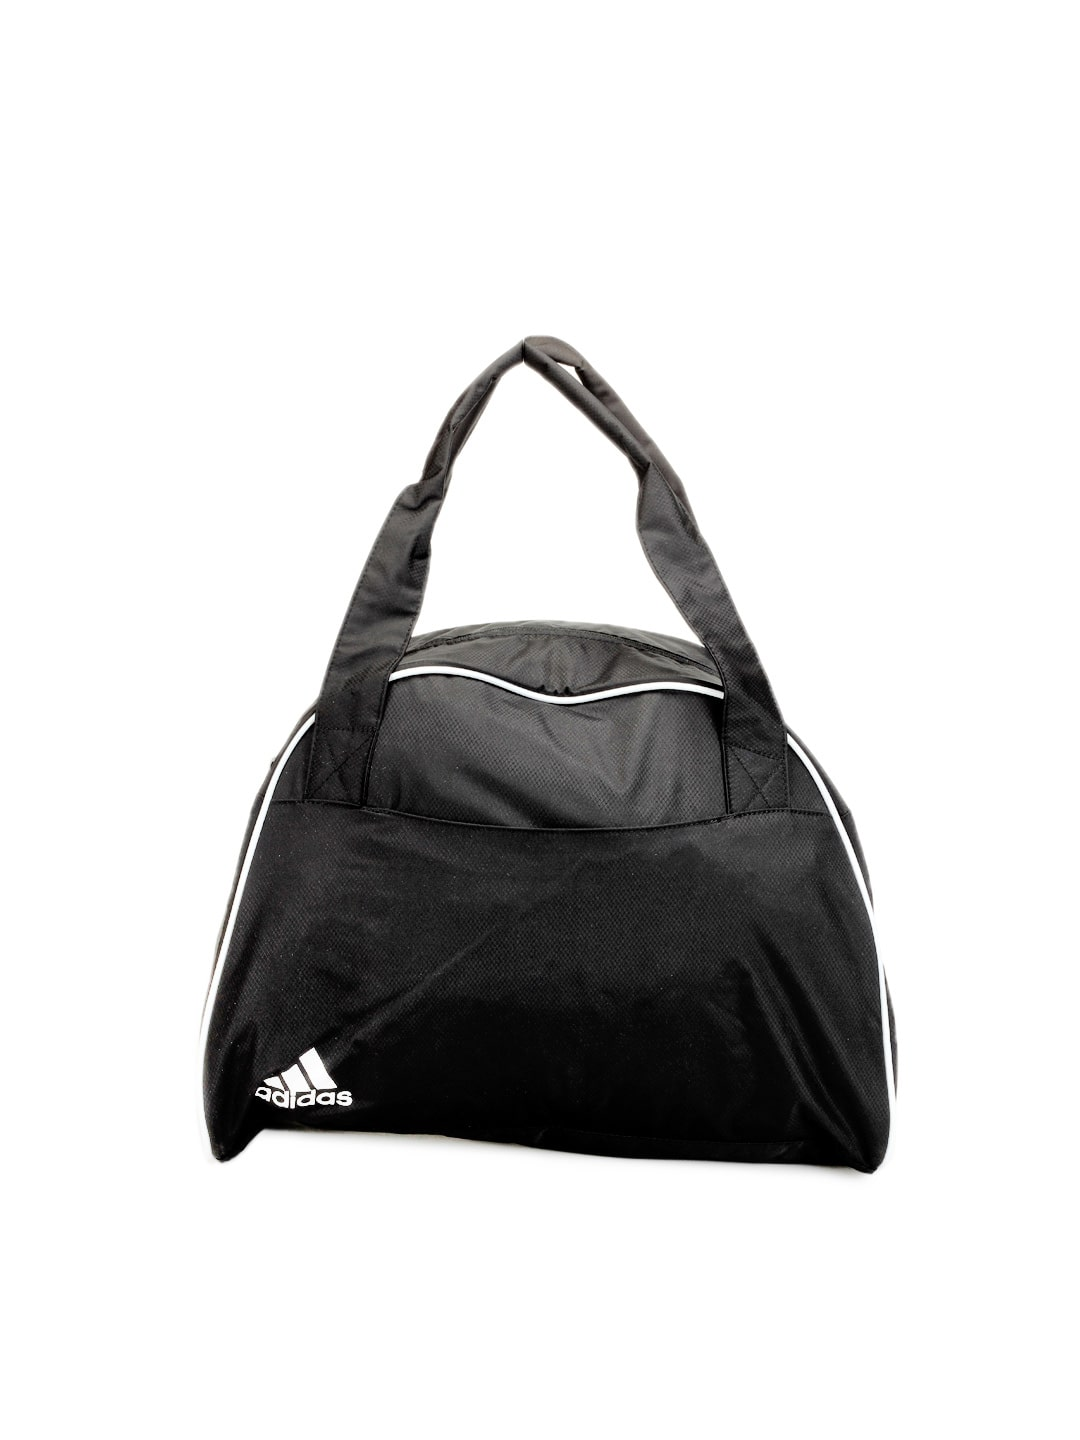 Adidas school bags price in india | Traveling Shoe Bags